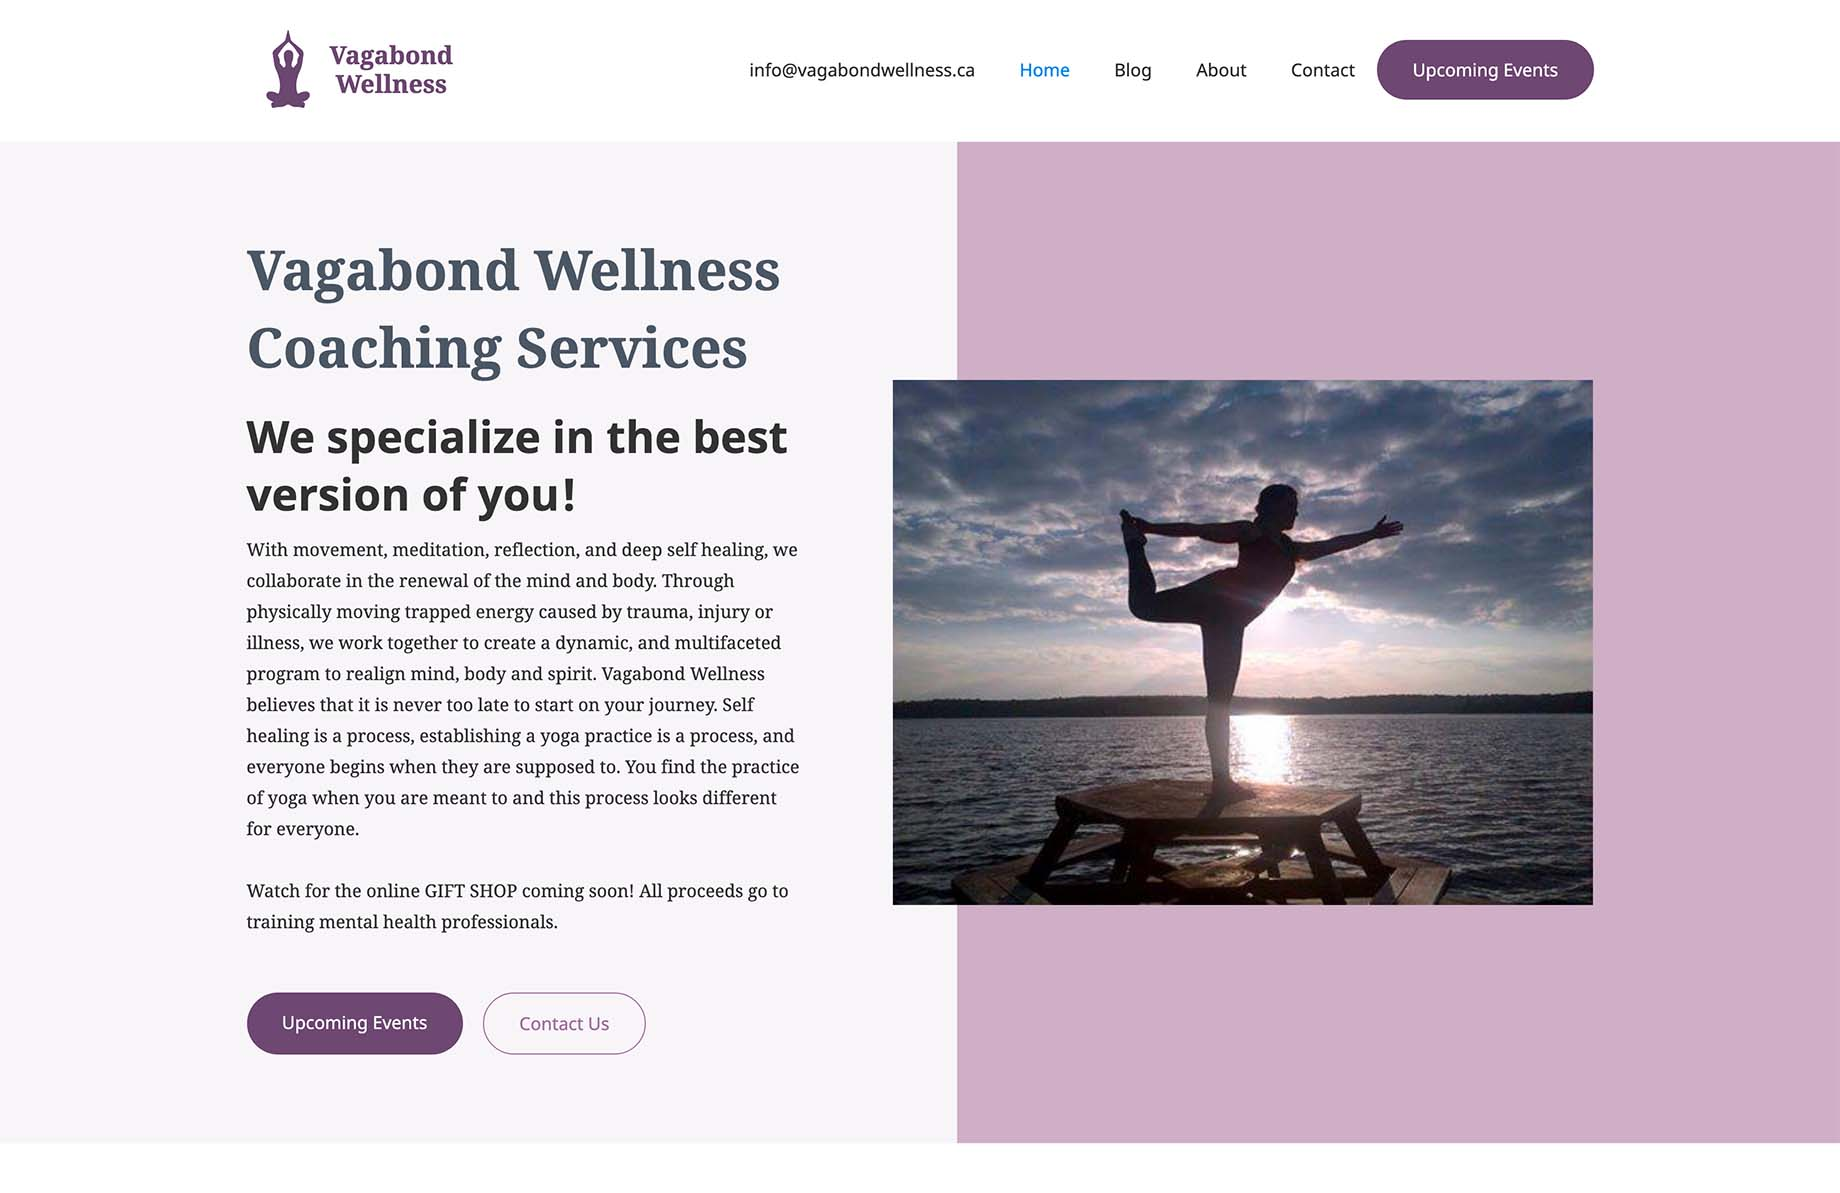 Picture of Vagabond Wellness website home page.